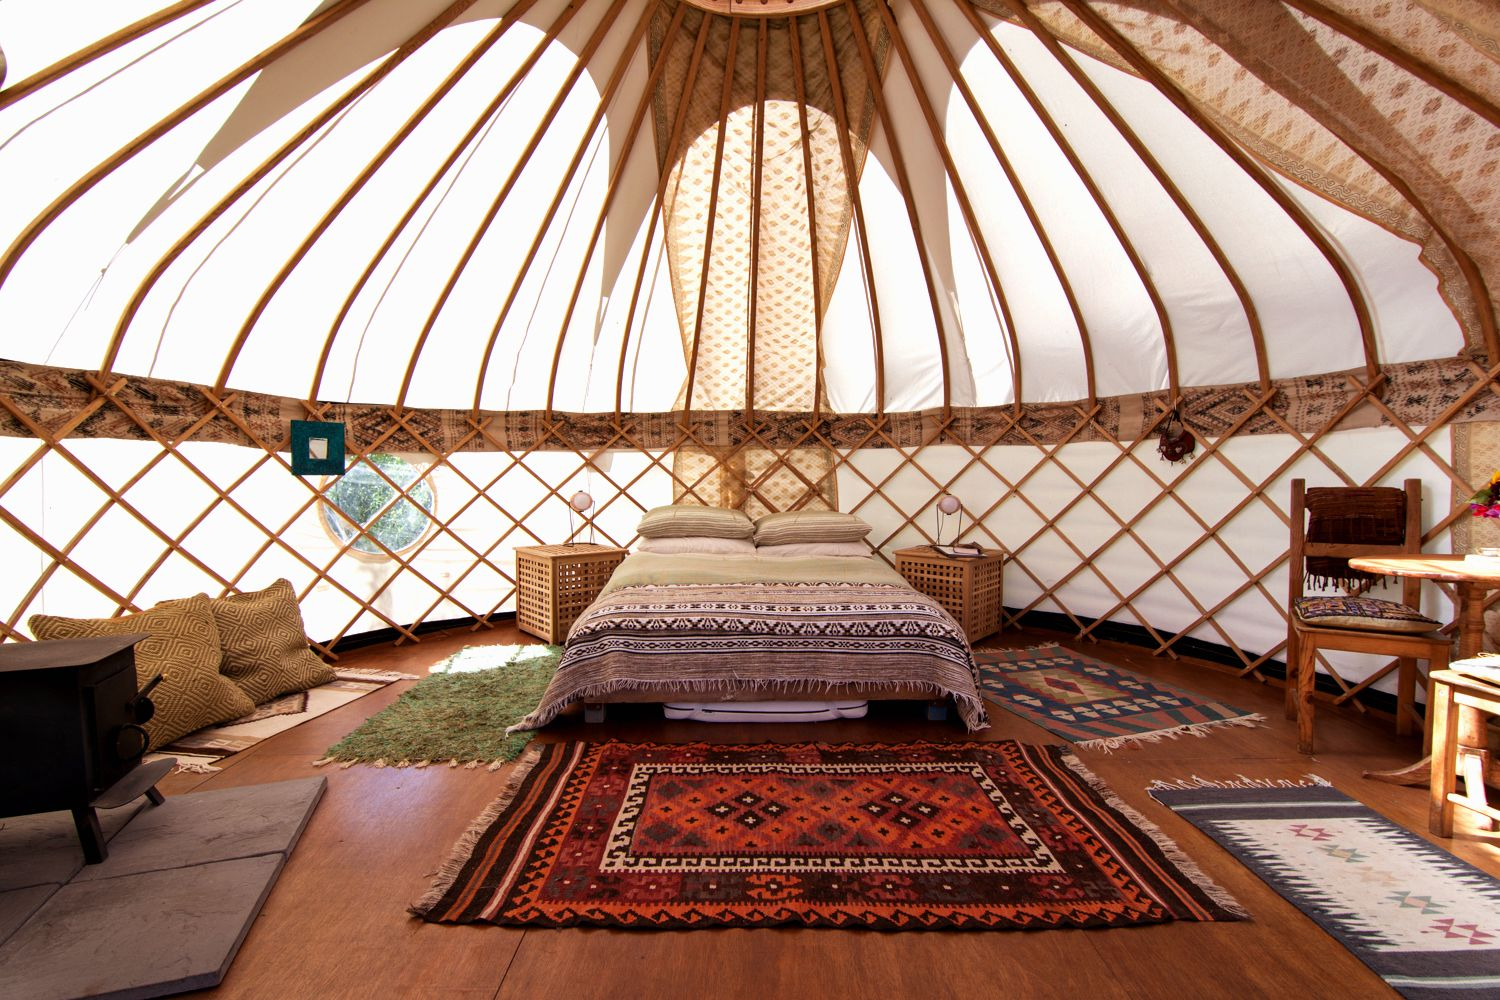 Glamping in St. Austell holidays at Glampingly